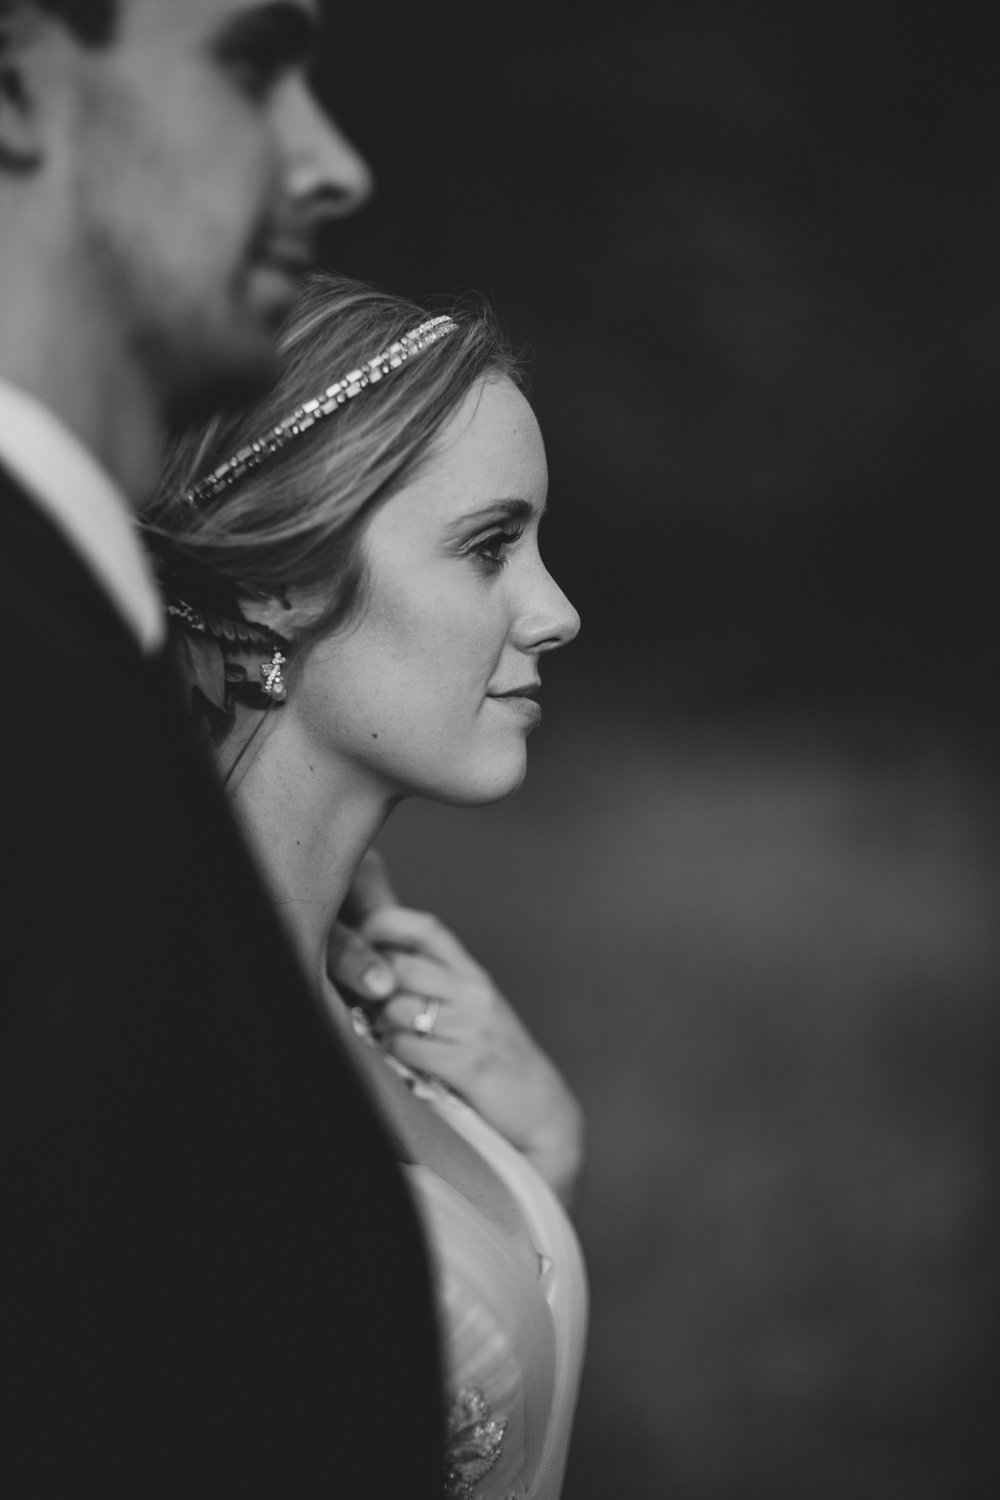 Steph-Jon-Wedding-Preview-5095-Squarespace.jpg